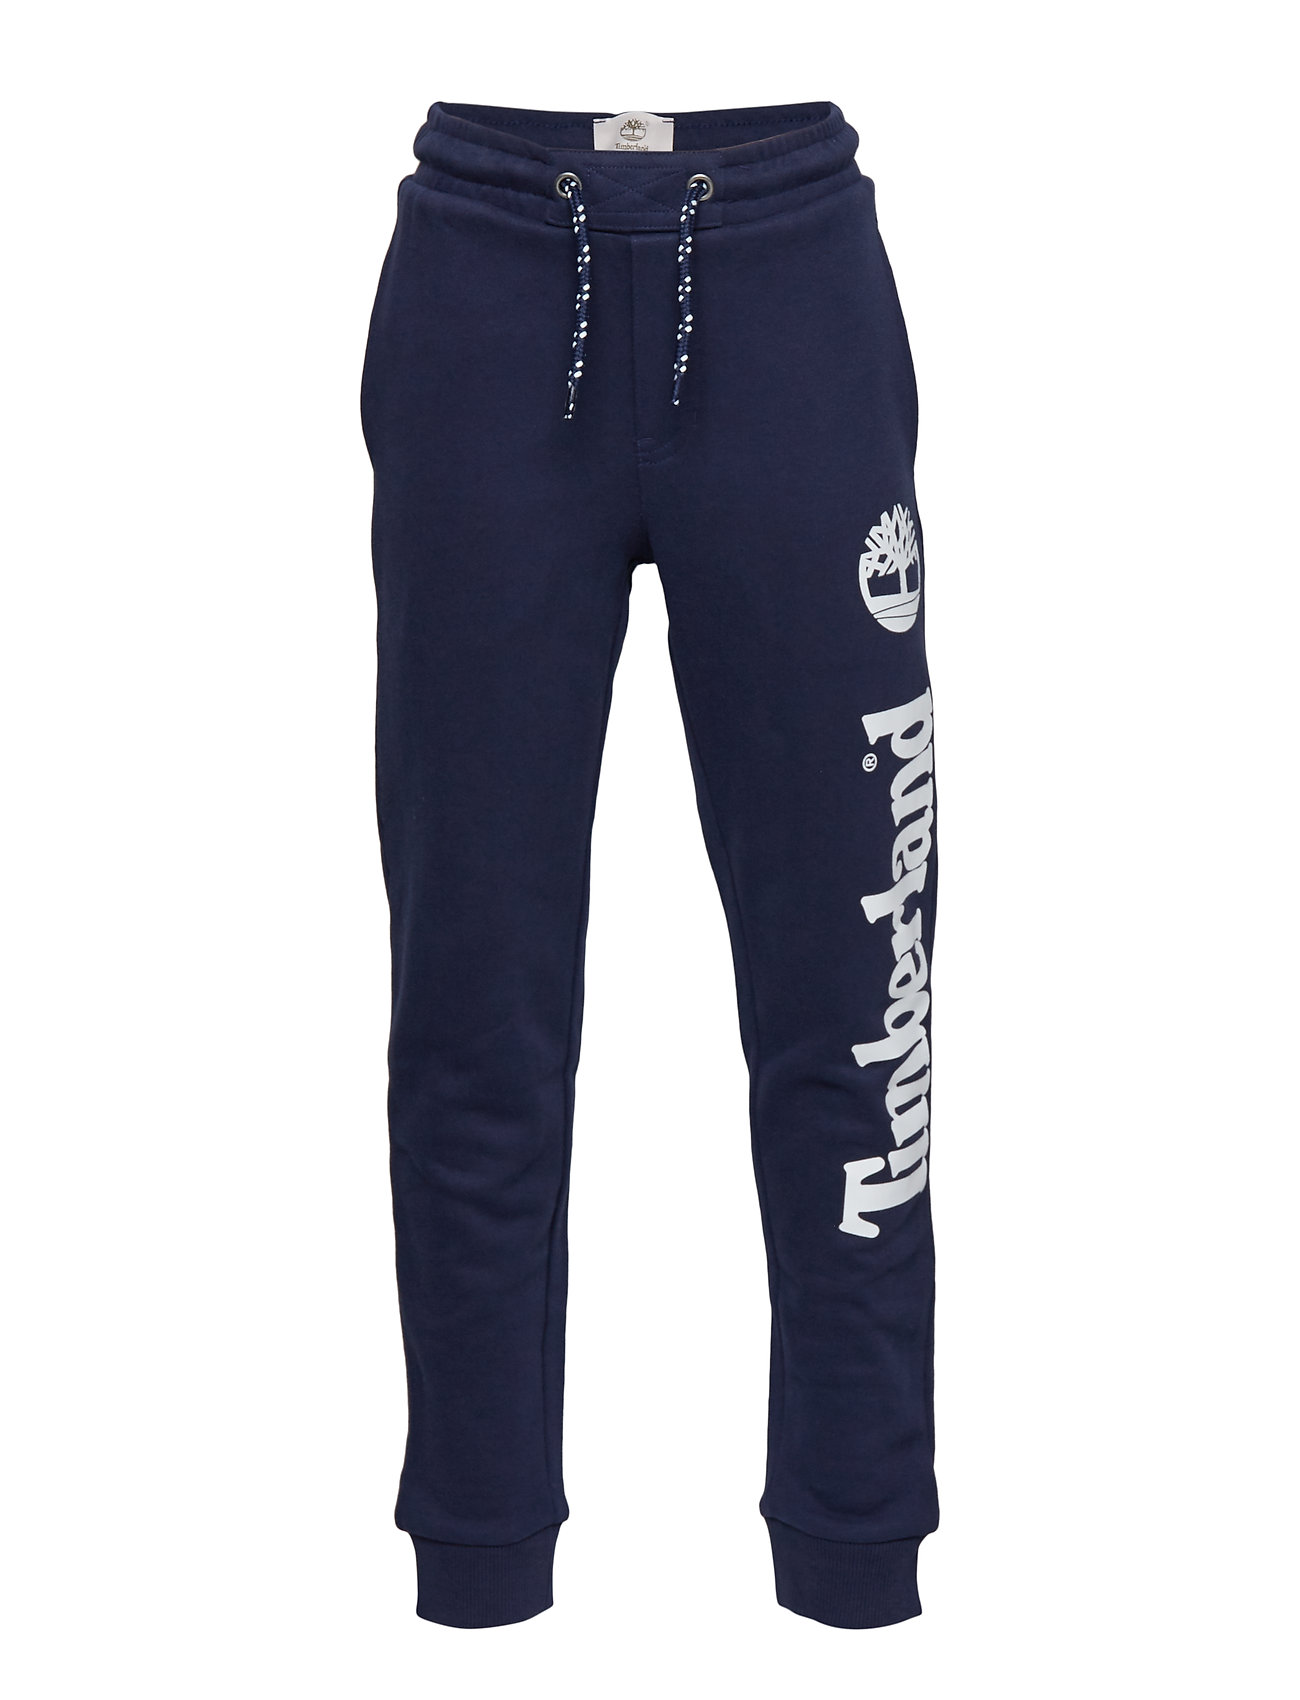 Timberland TRACK-SUIT - NAVY